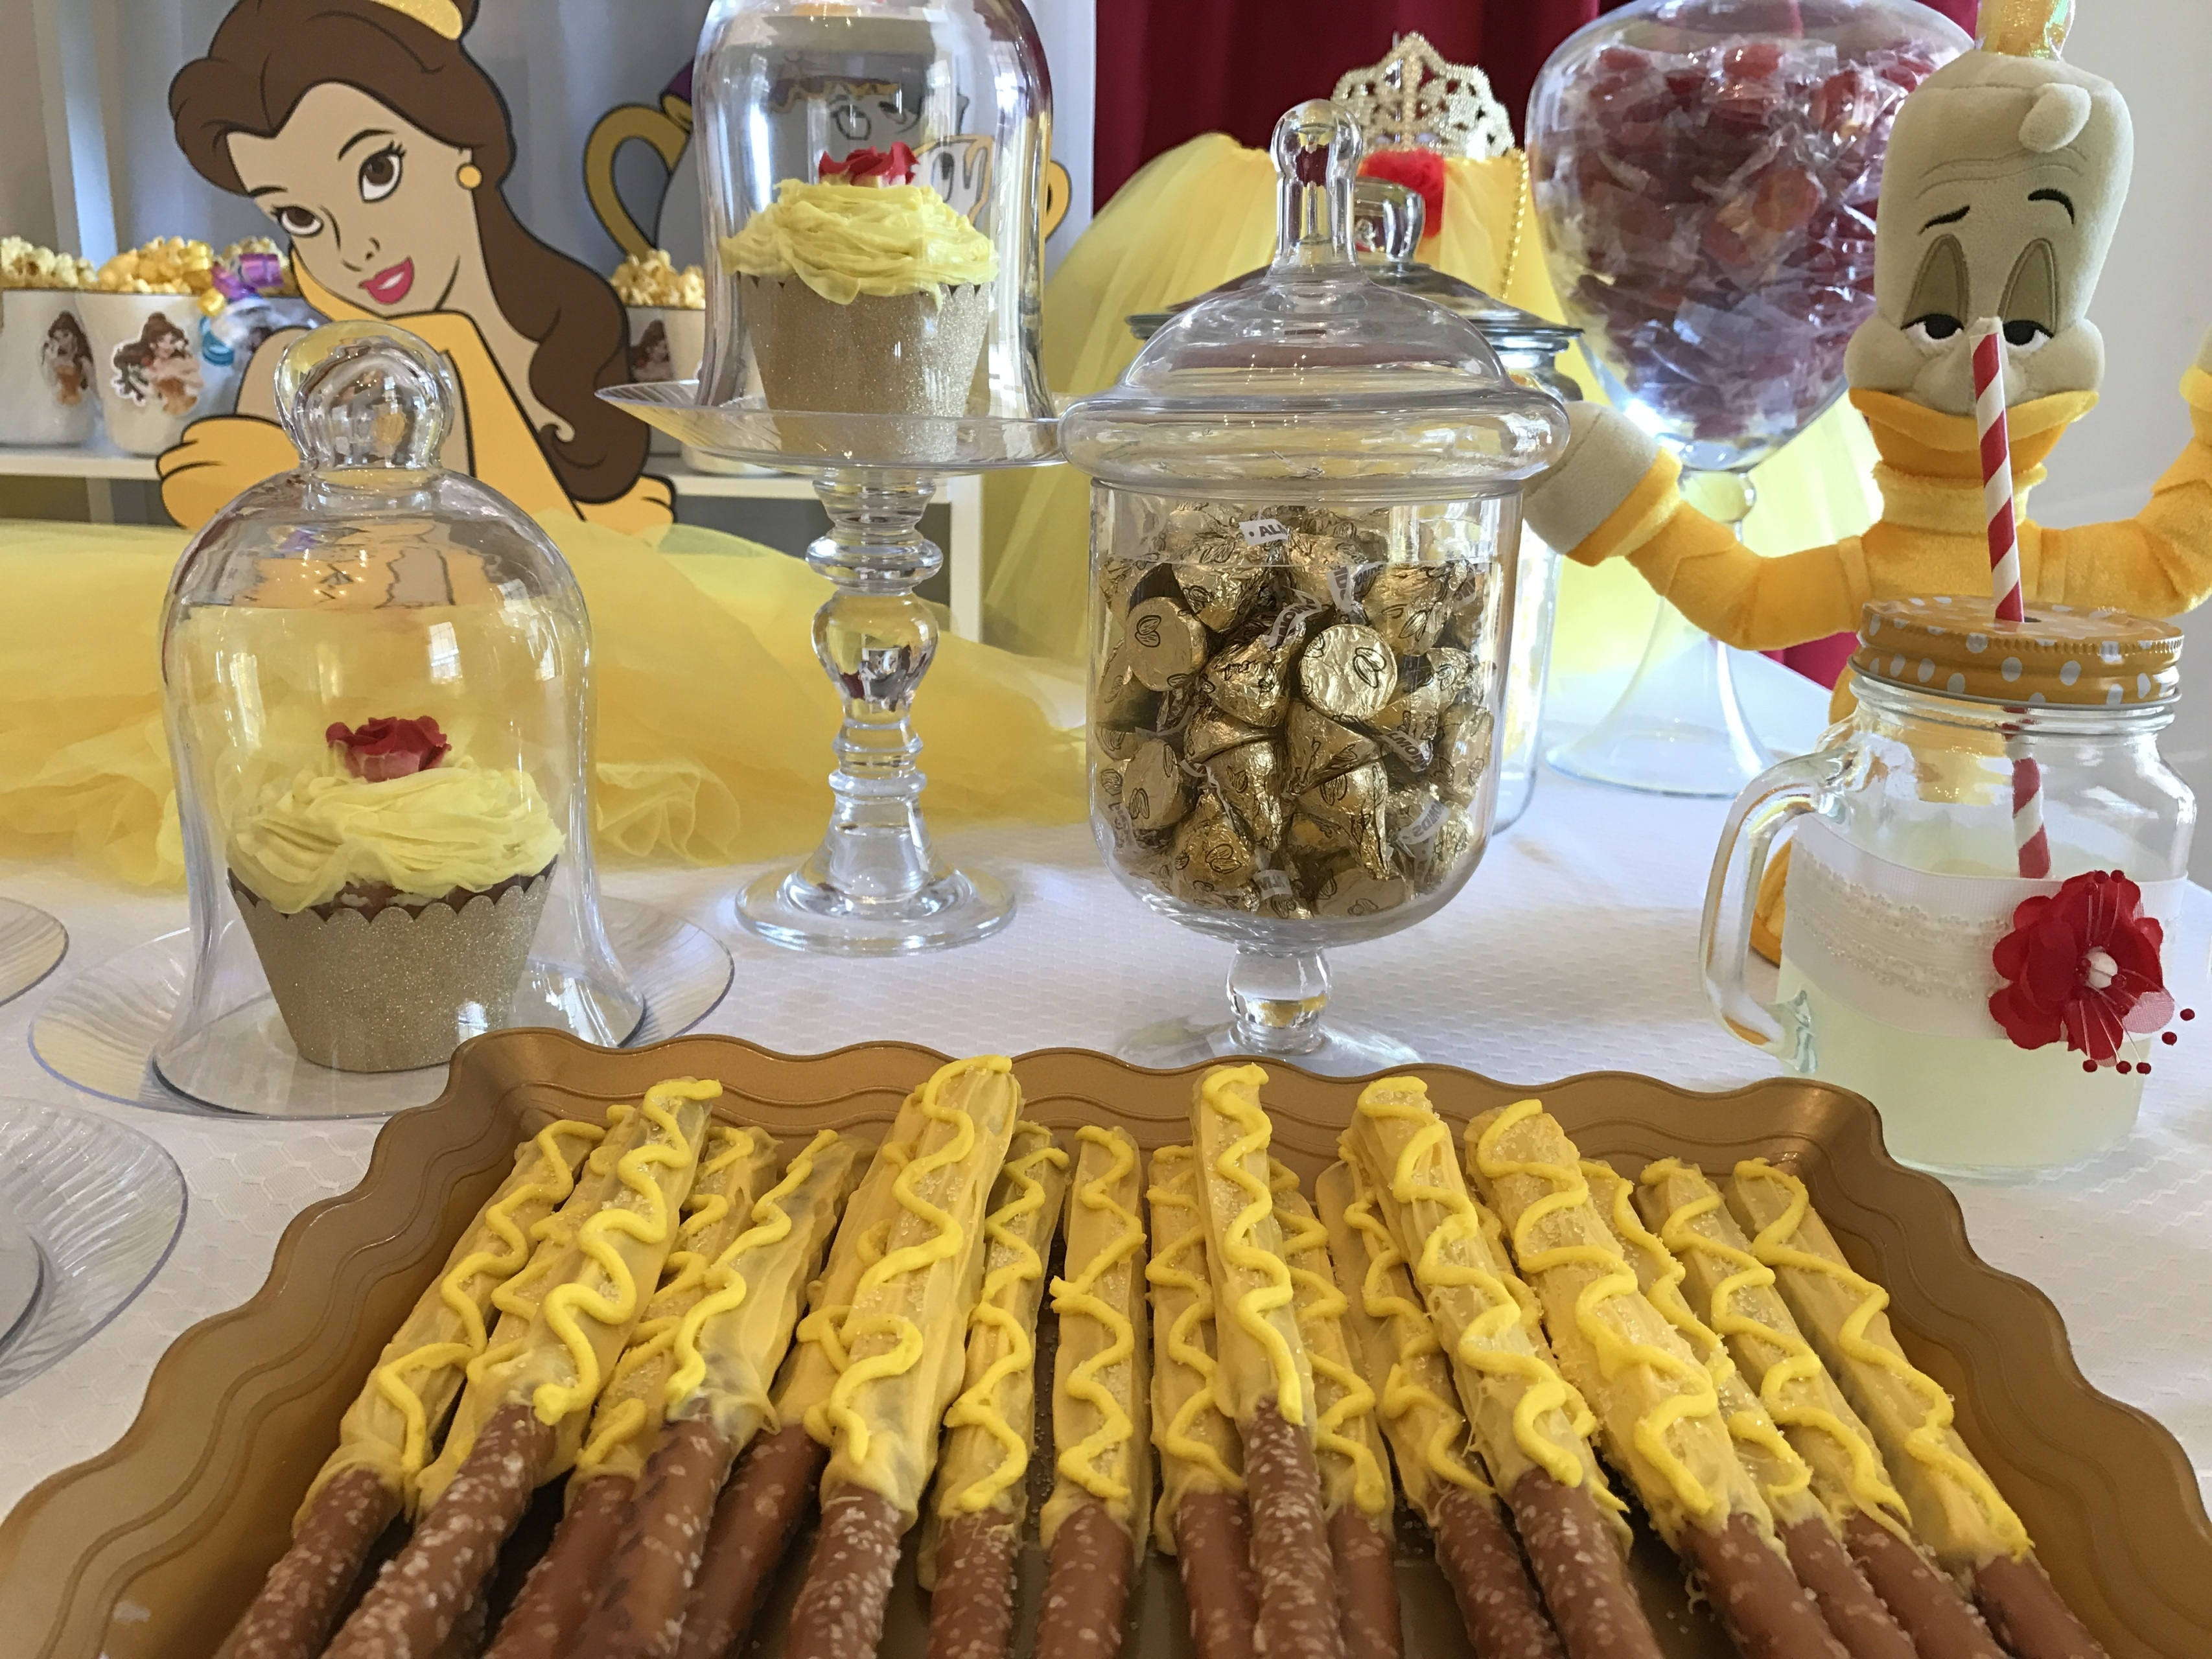 10 Great Beauty And The Beast Party Ideas %name 2021